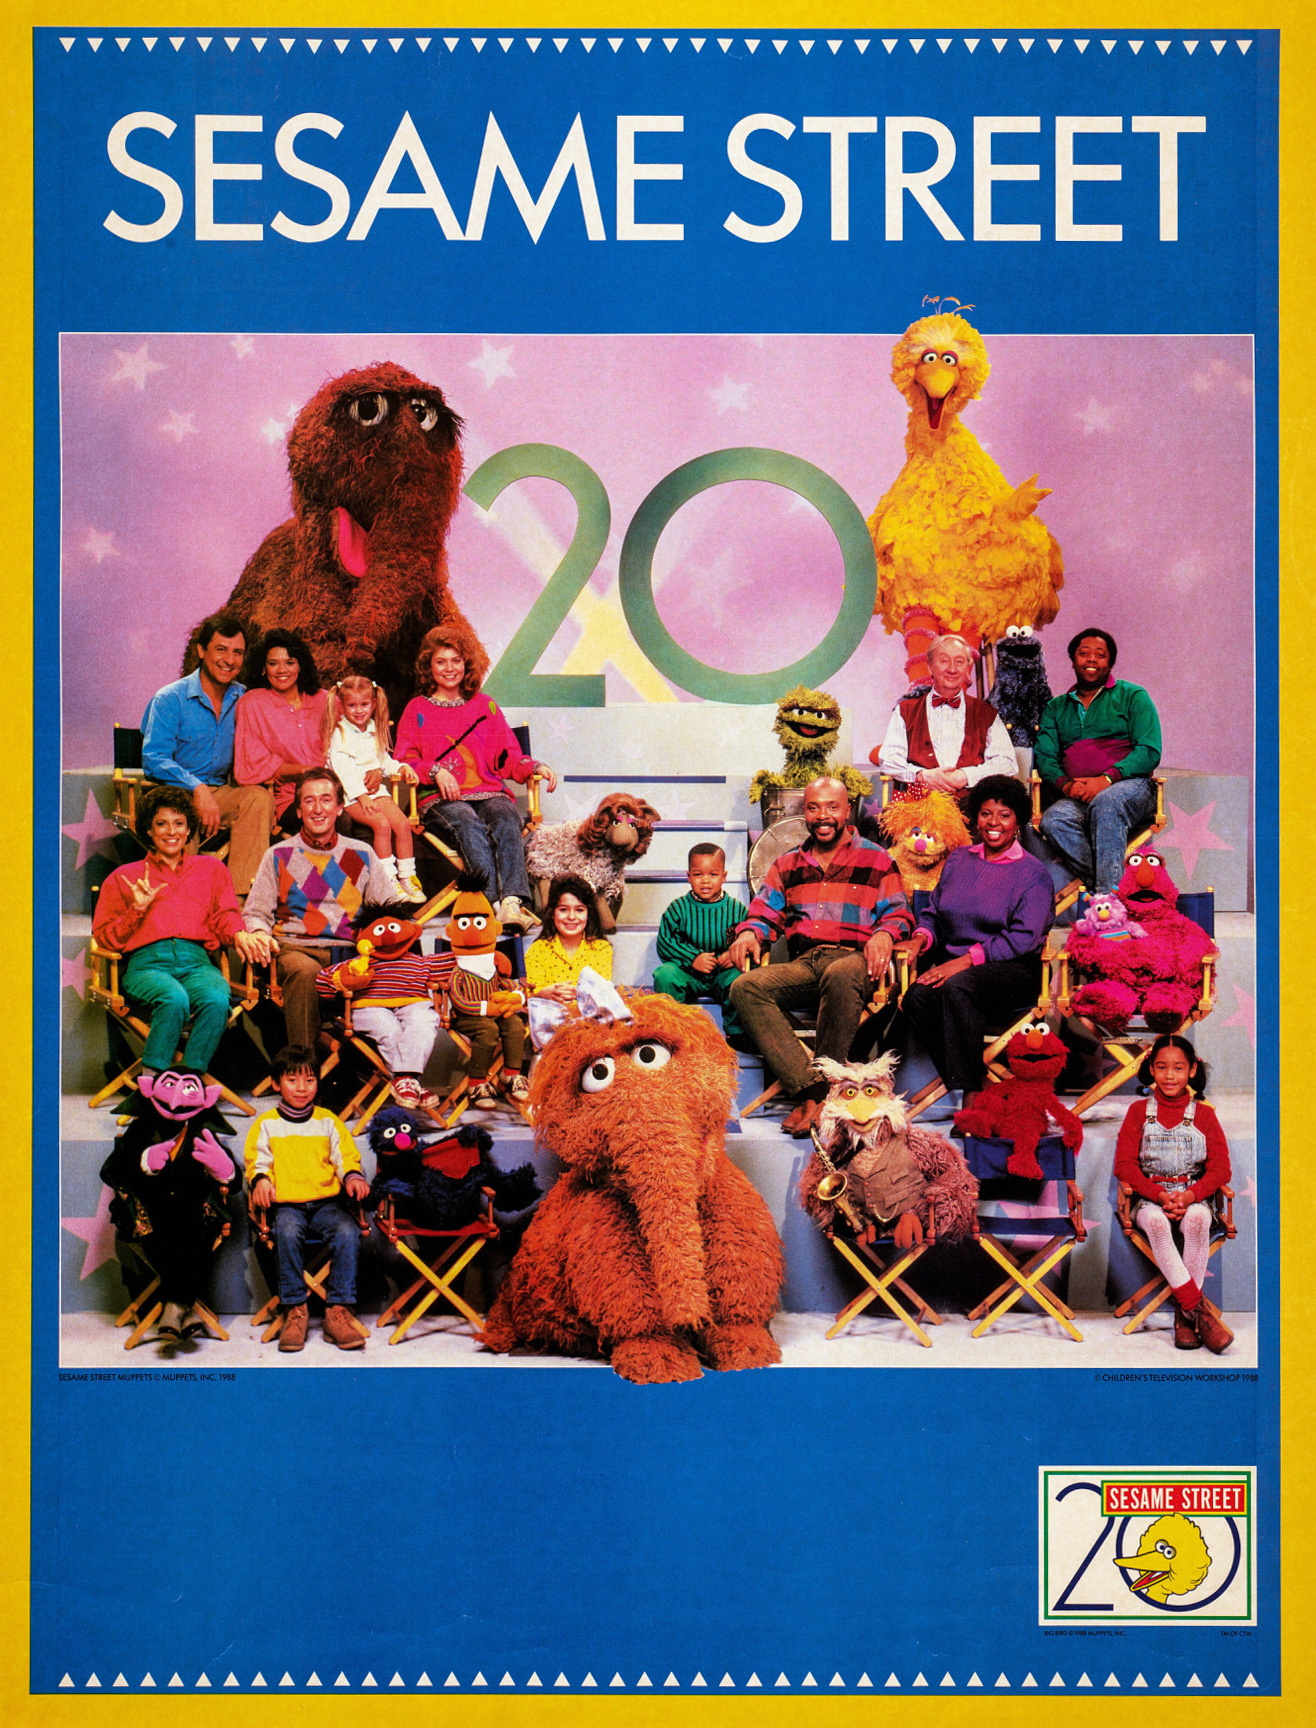 Season 20 (1988-1989) | Muppet Wiki | FANDOM powered by Wikia